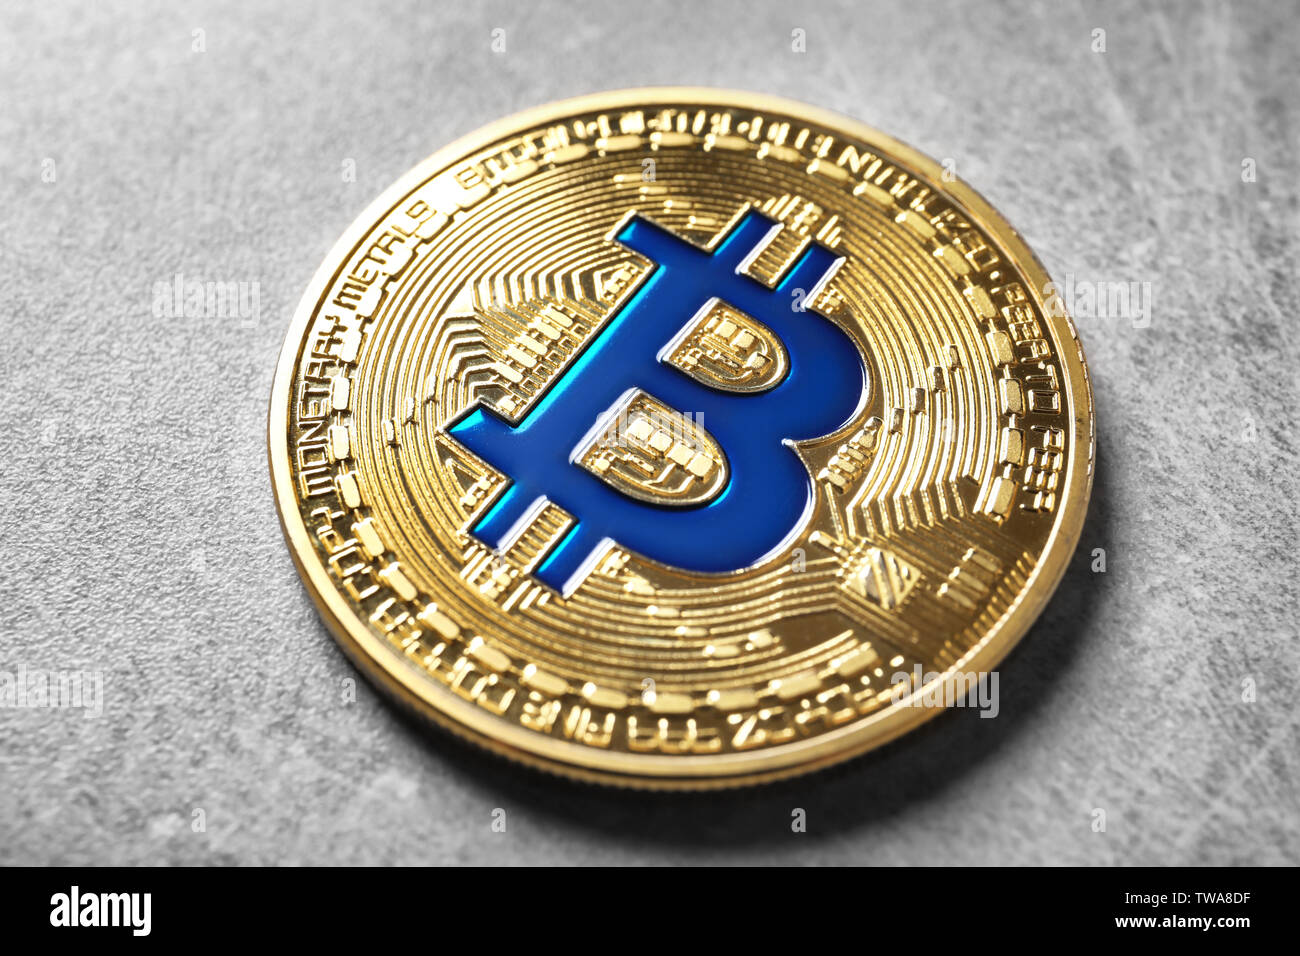 Golden bitcoin on grey background. Finance trading - Stock Image